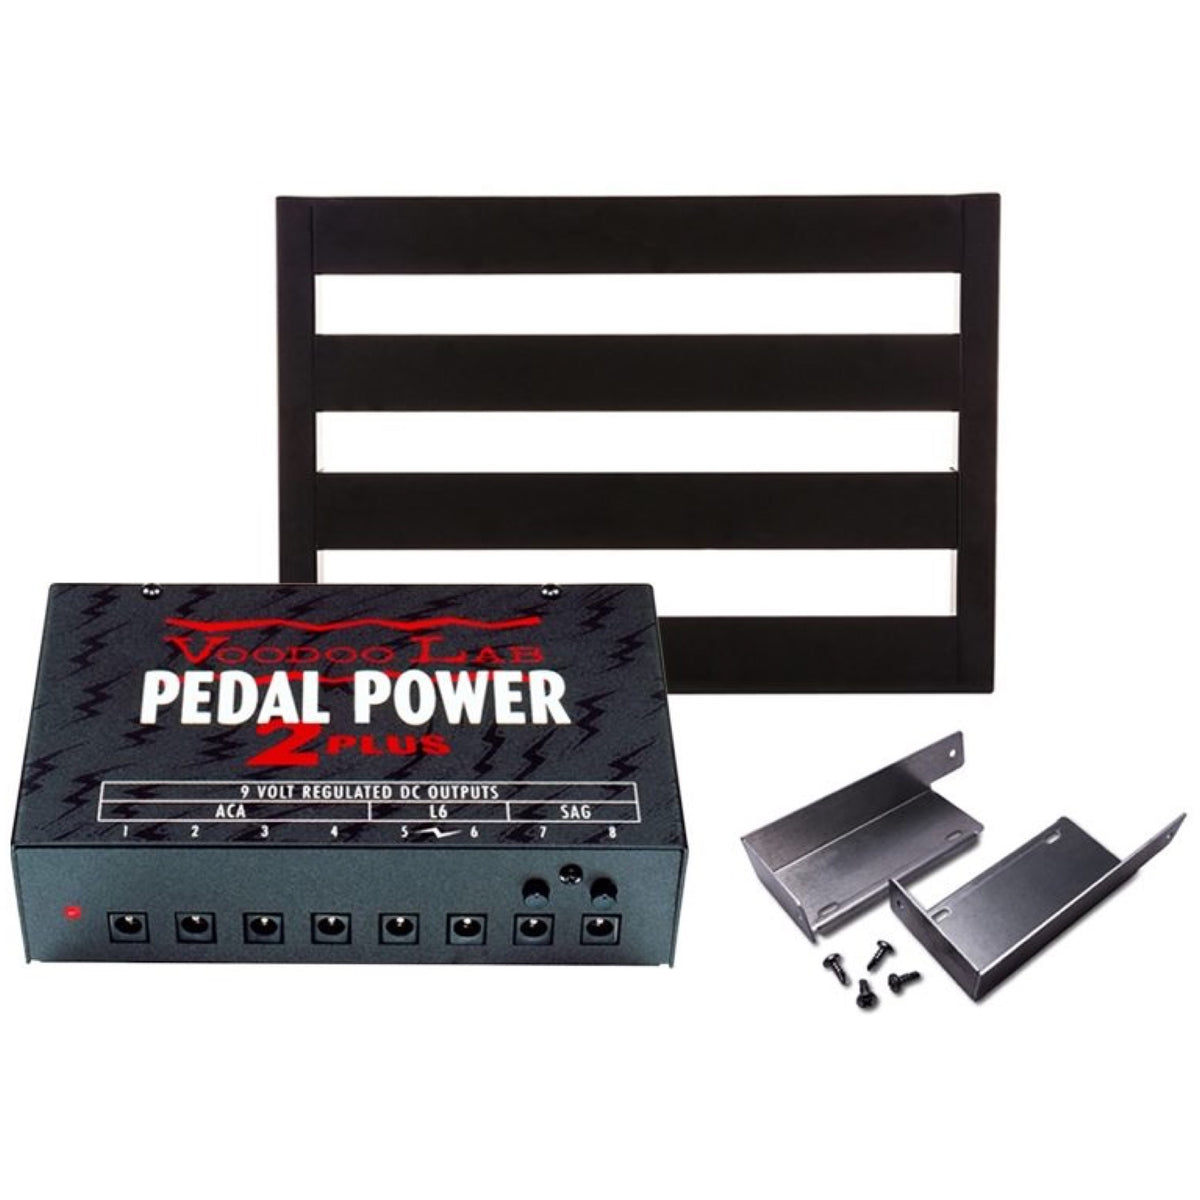 Voodoo Lab Pedal Power 2 Plus Universal Power Supply, with Pedaltrain Classic JR Pedalboard and Brackets